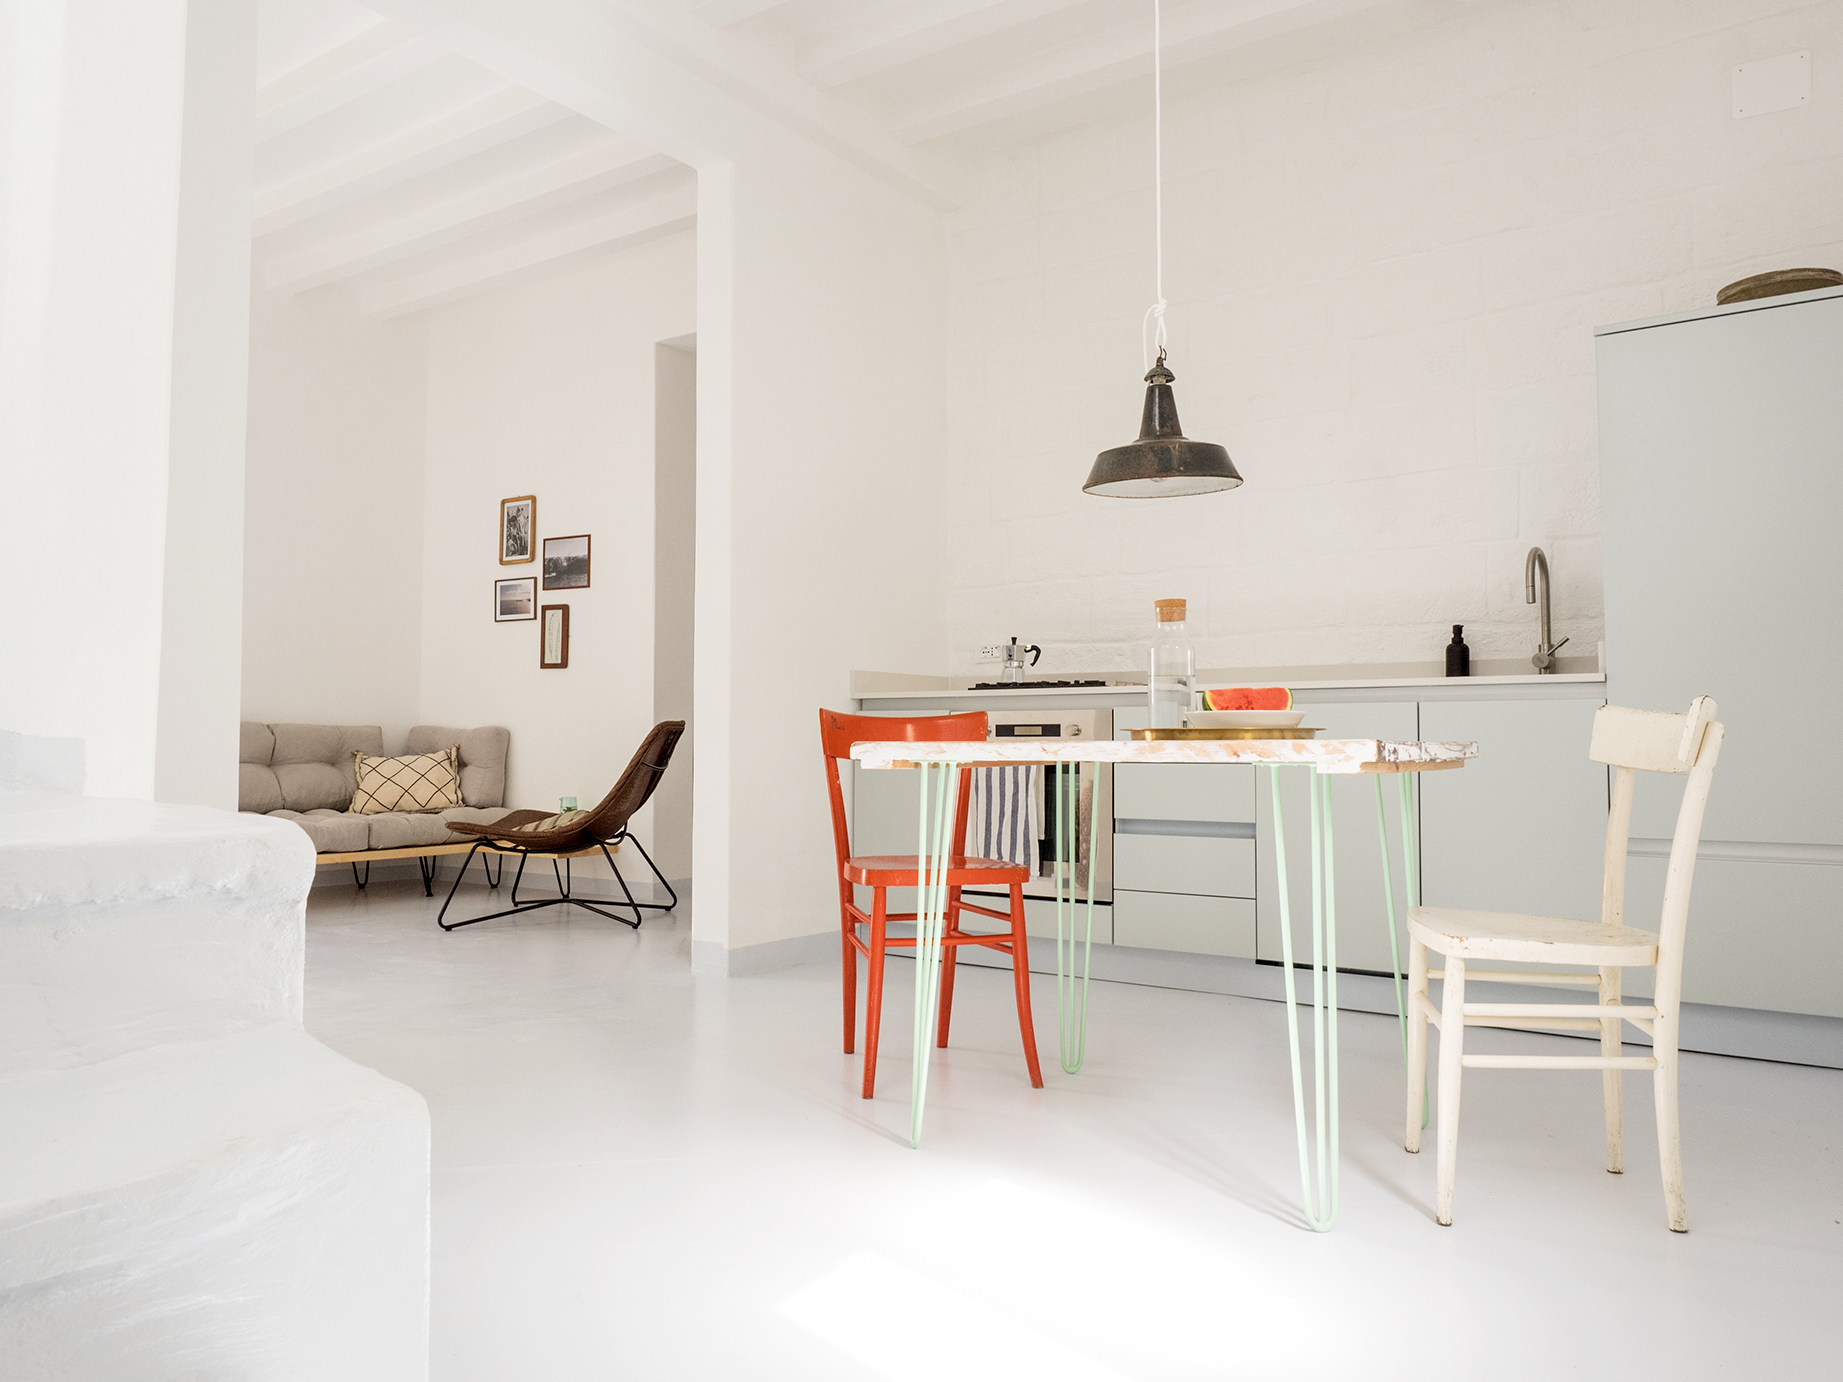 casa fava design apartment kueche 4